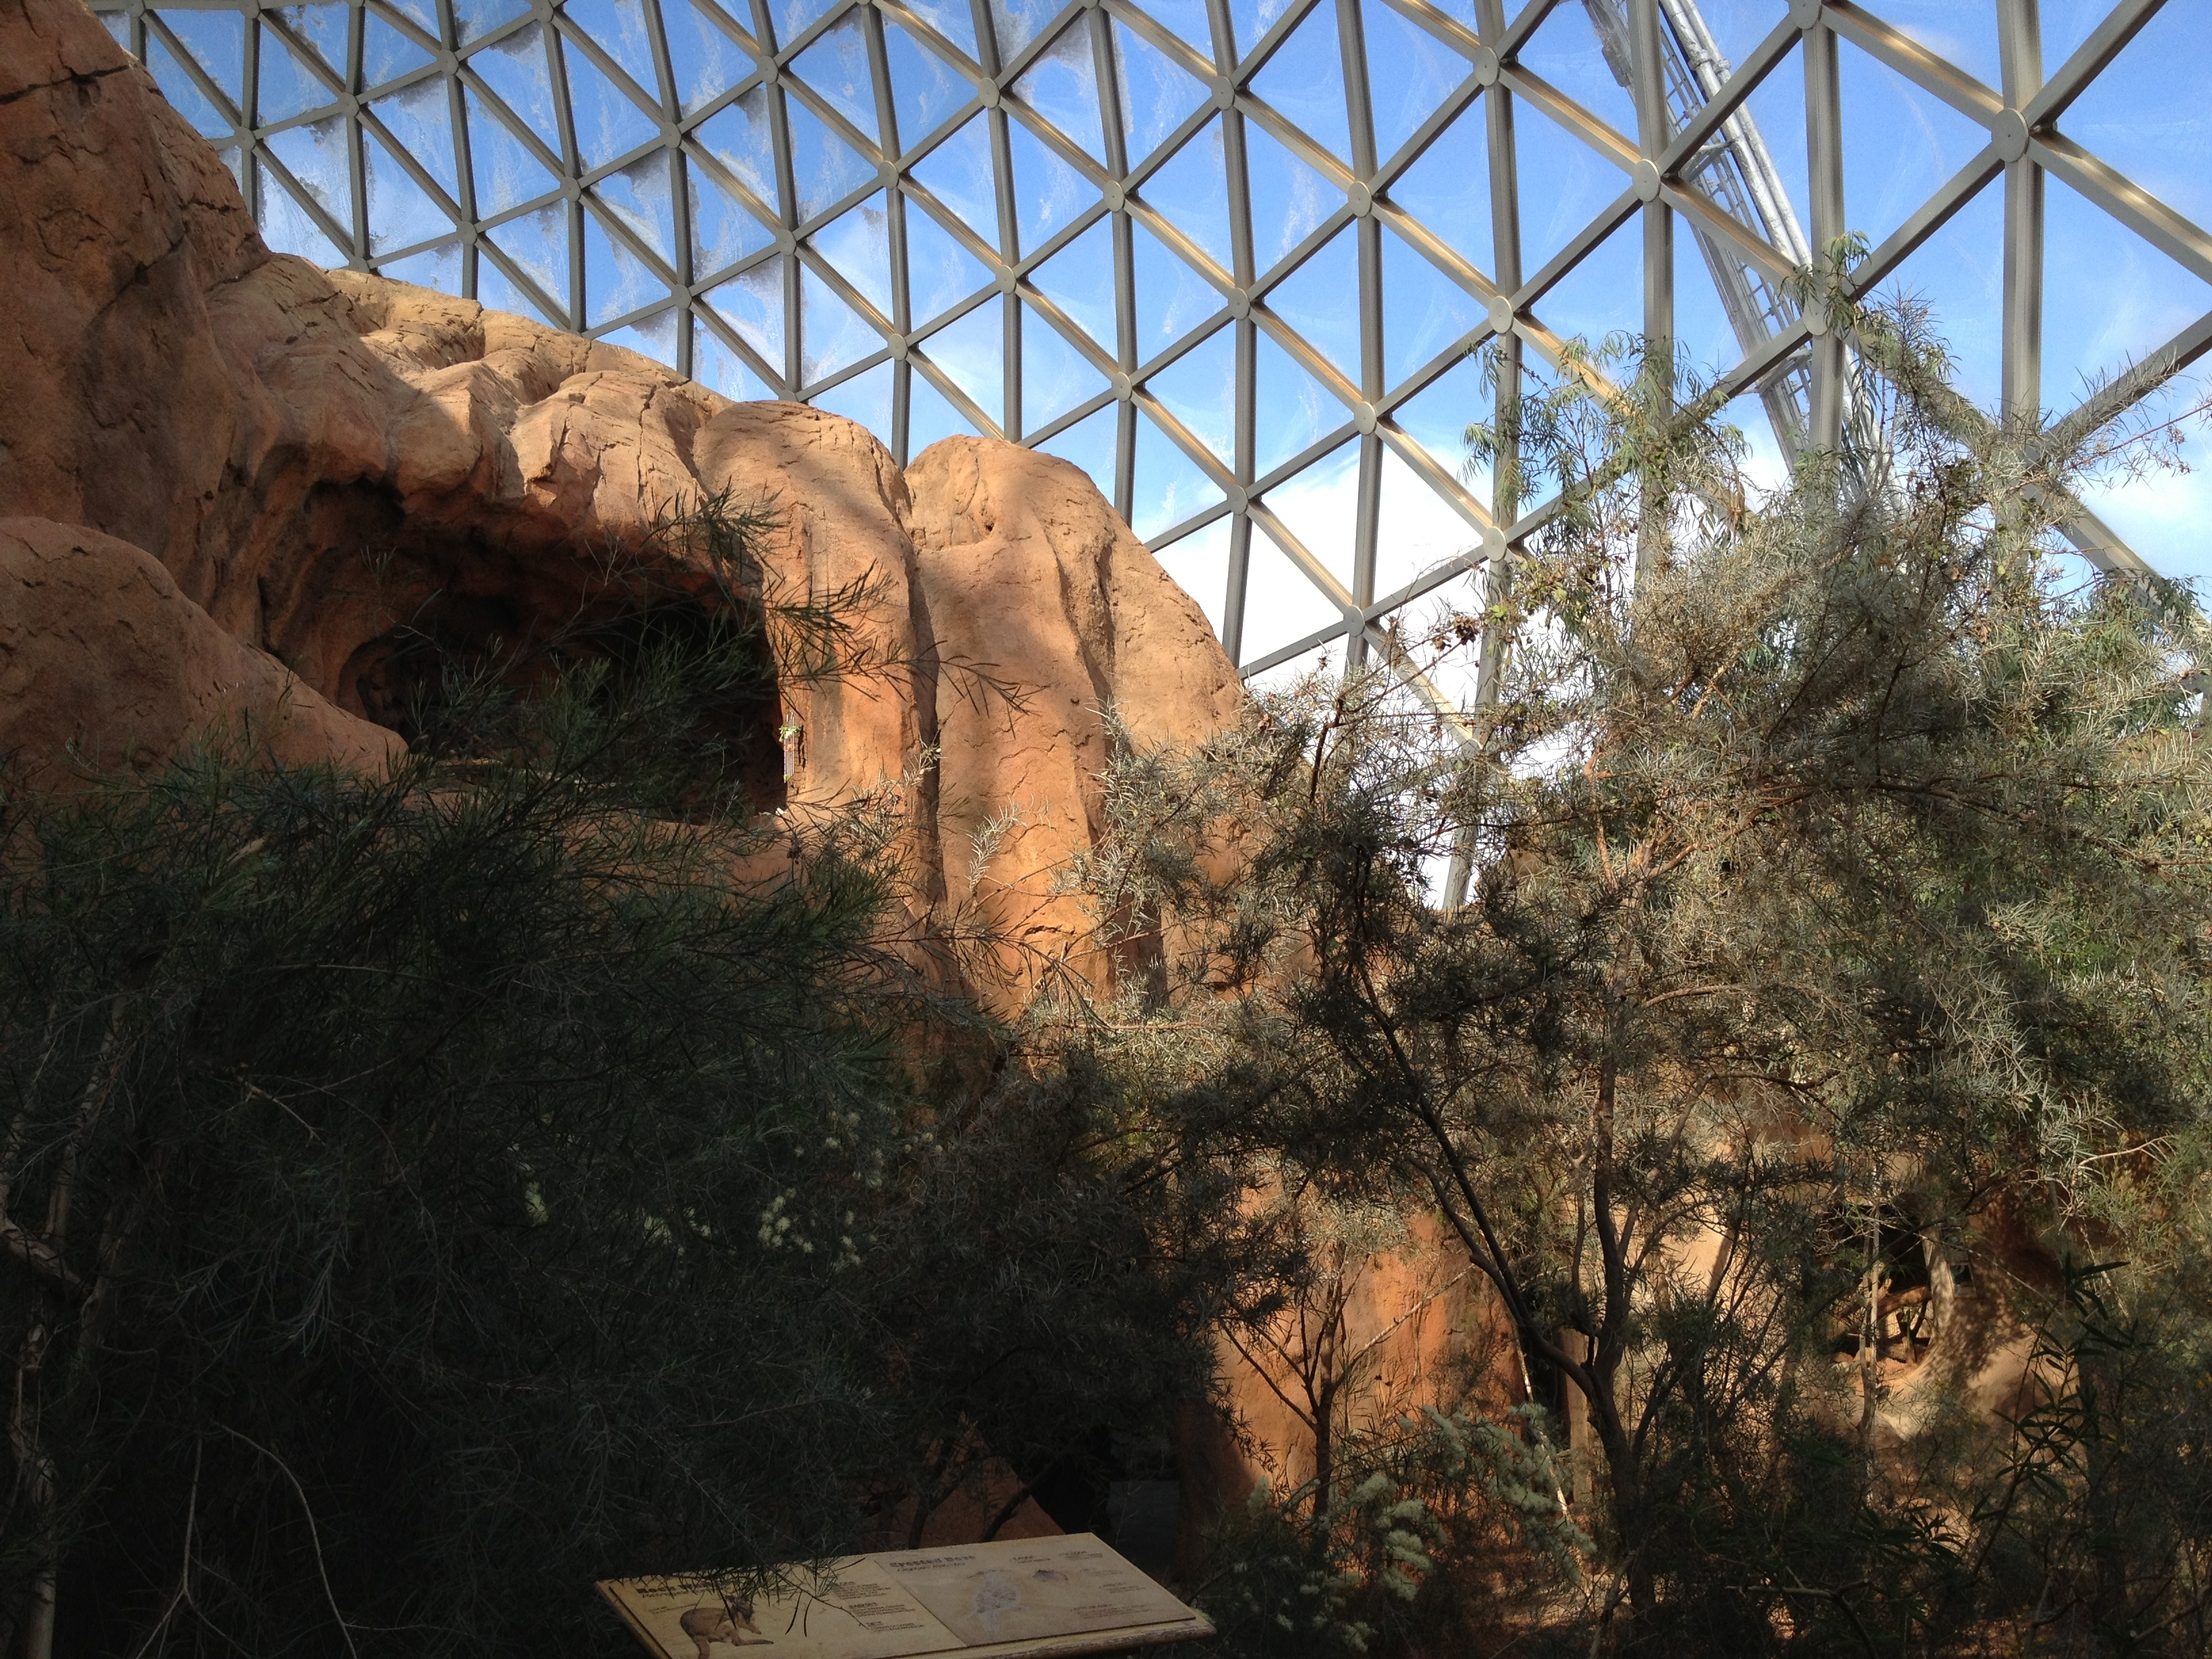 The World's Largest Indoor Desert